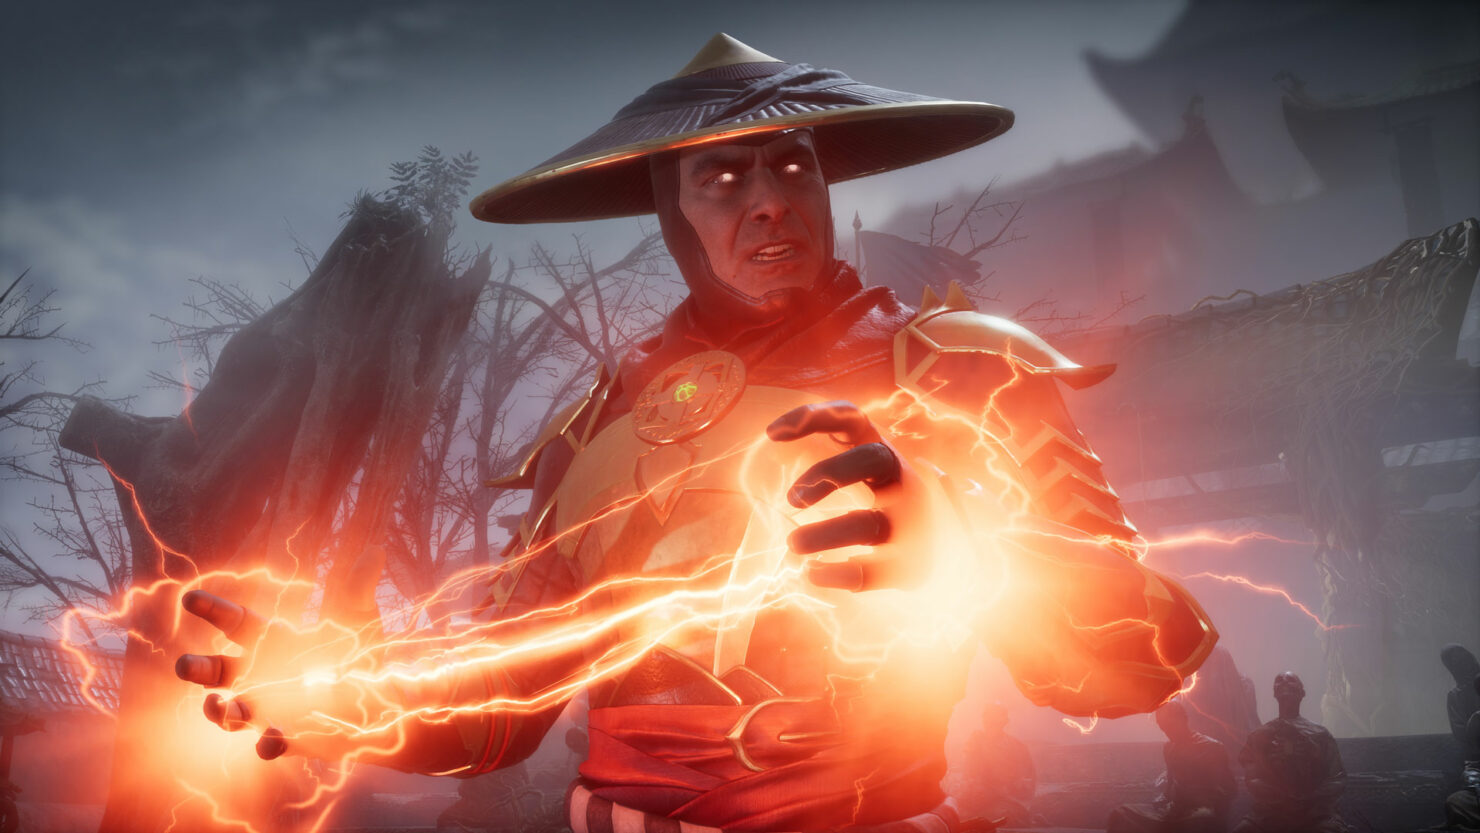 mortal-kombat-11-screenshots-2-1480x833.